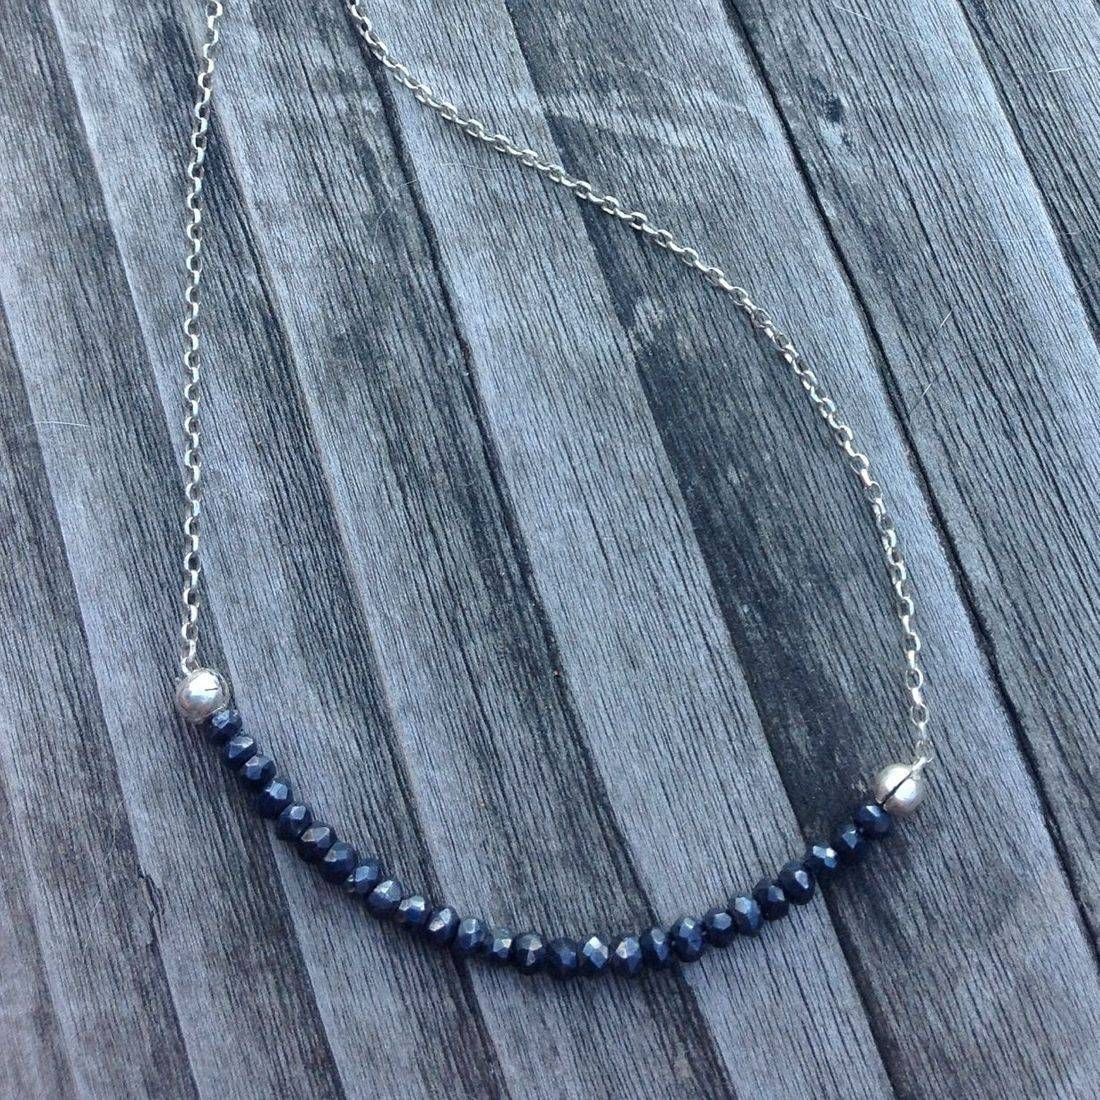 handmade, faceted spinel, gemstone necklace on silver chain,